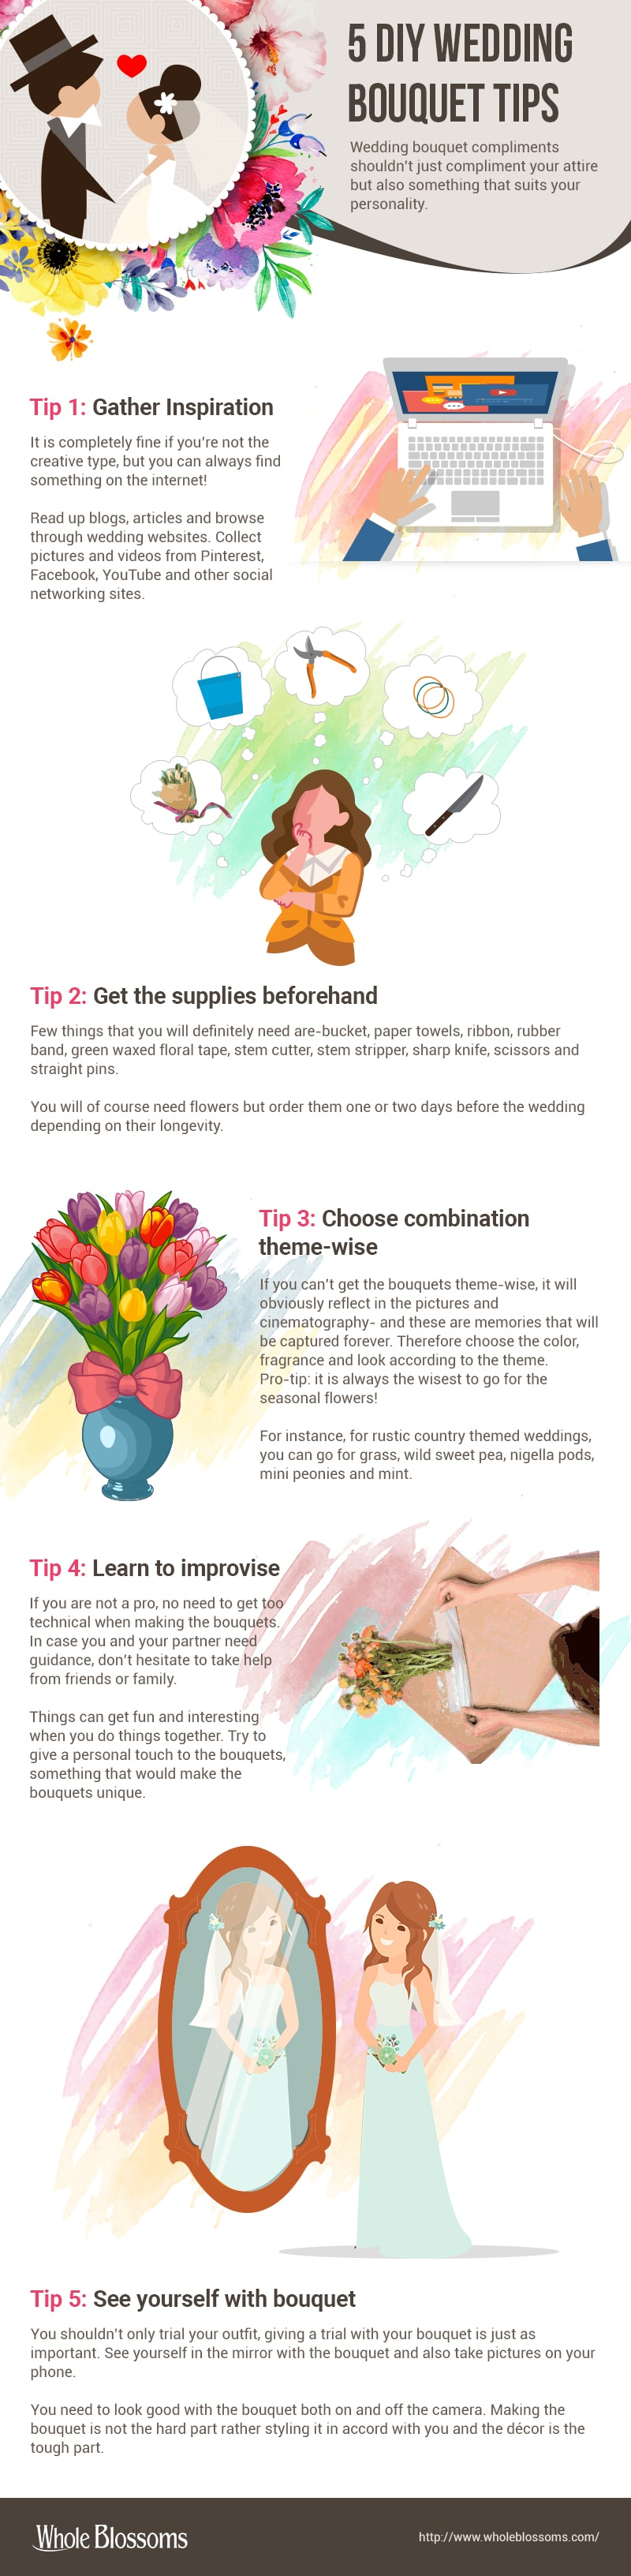 DIY Wedding Bouquet Tips